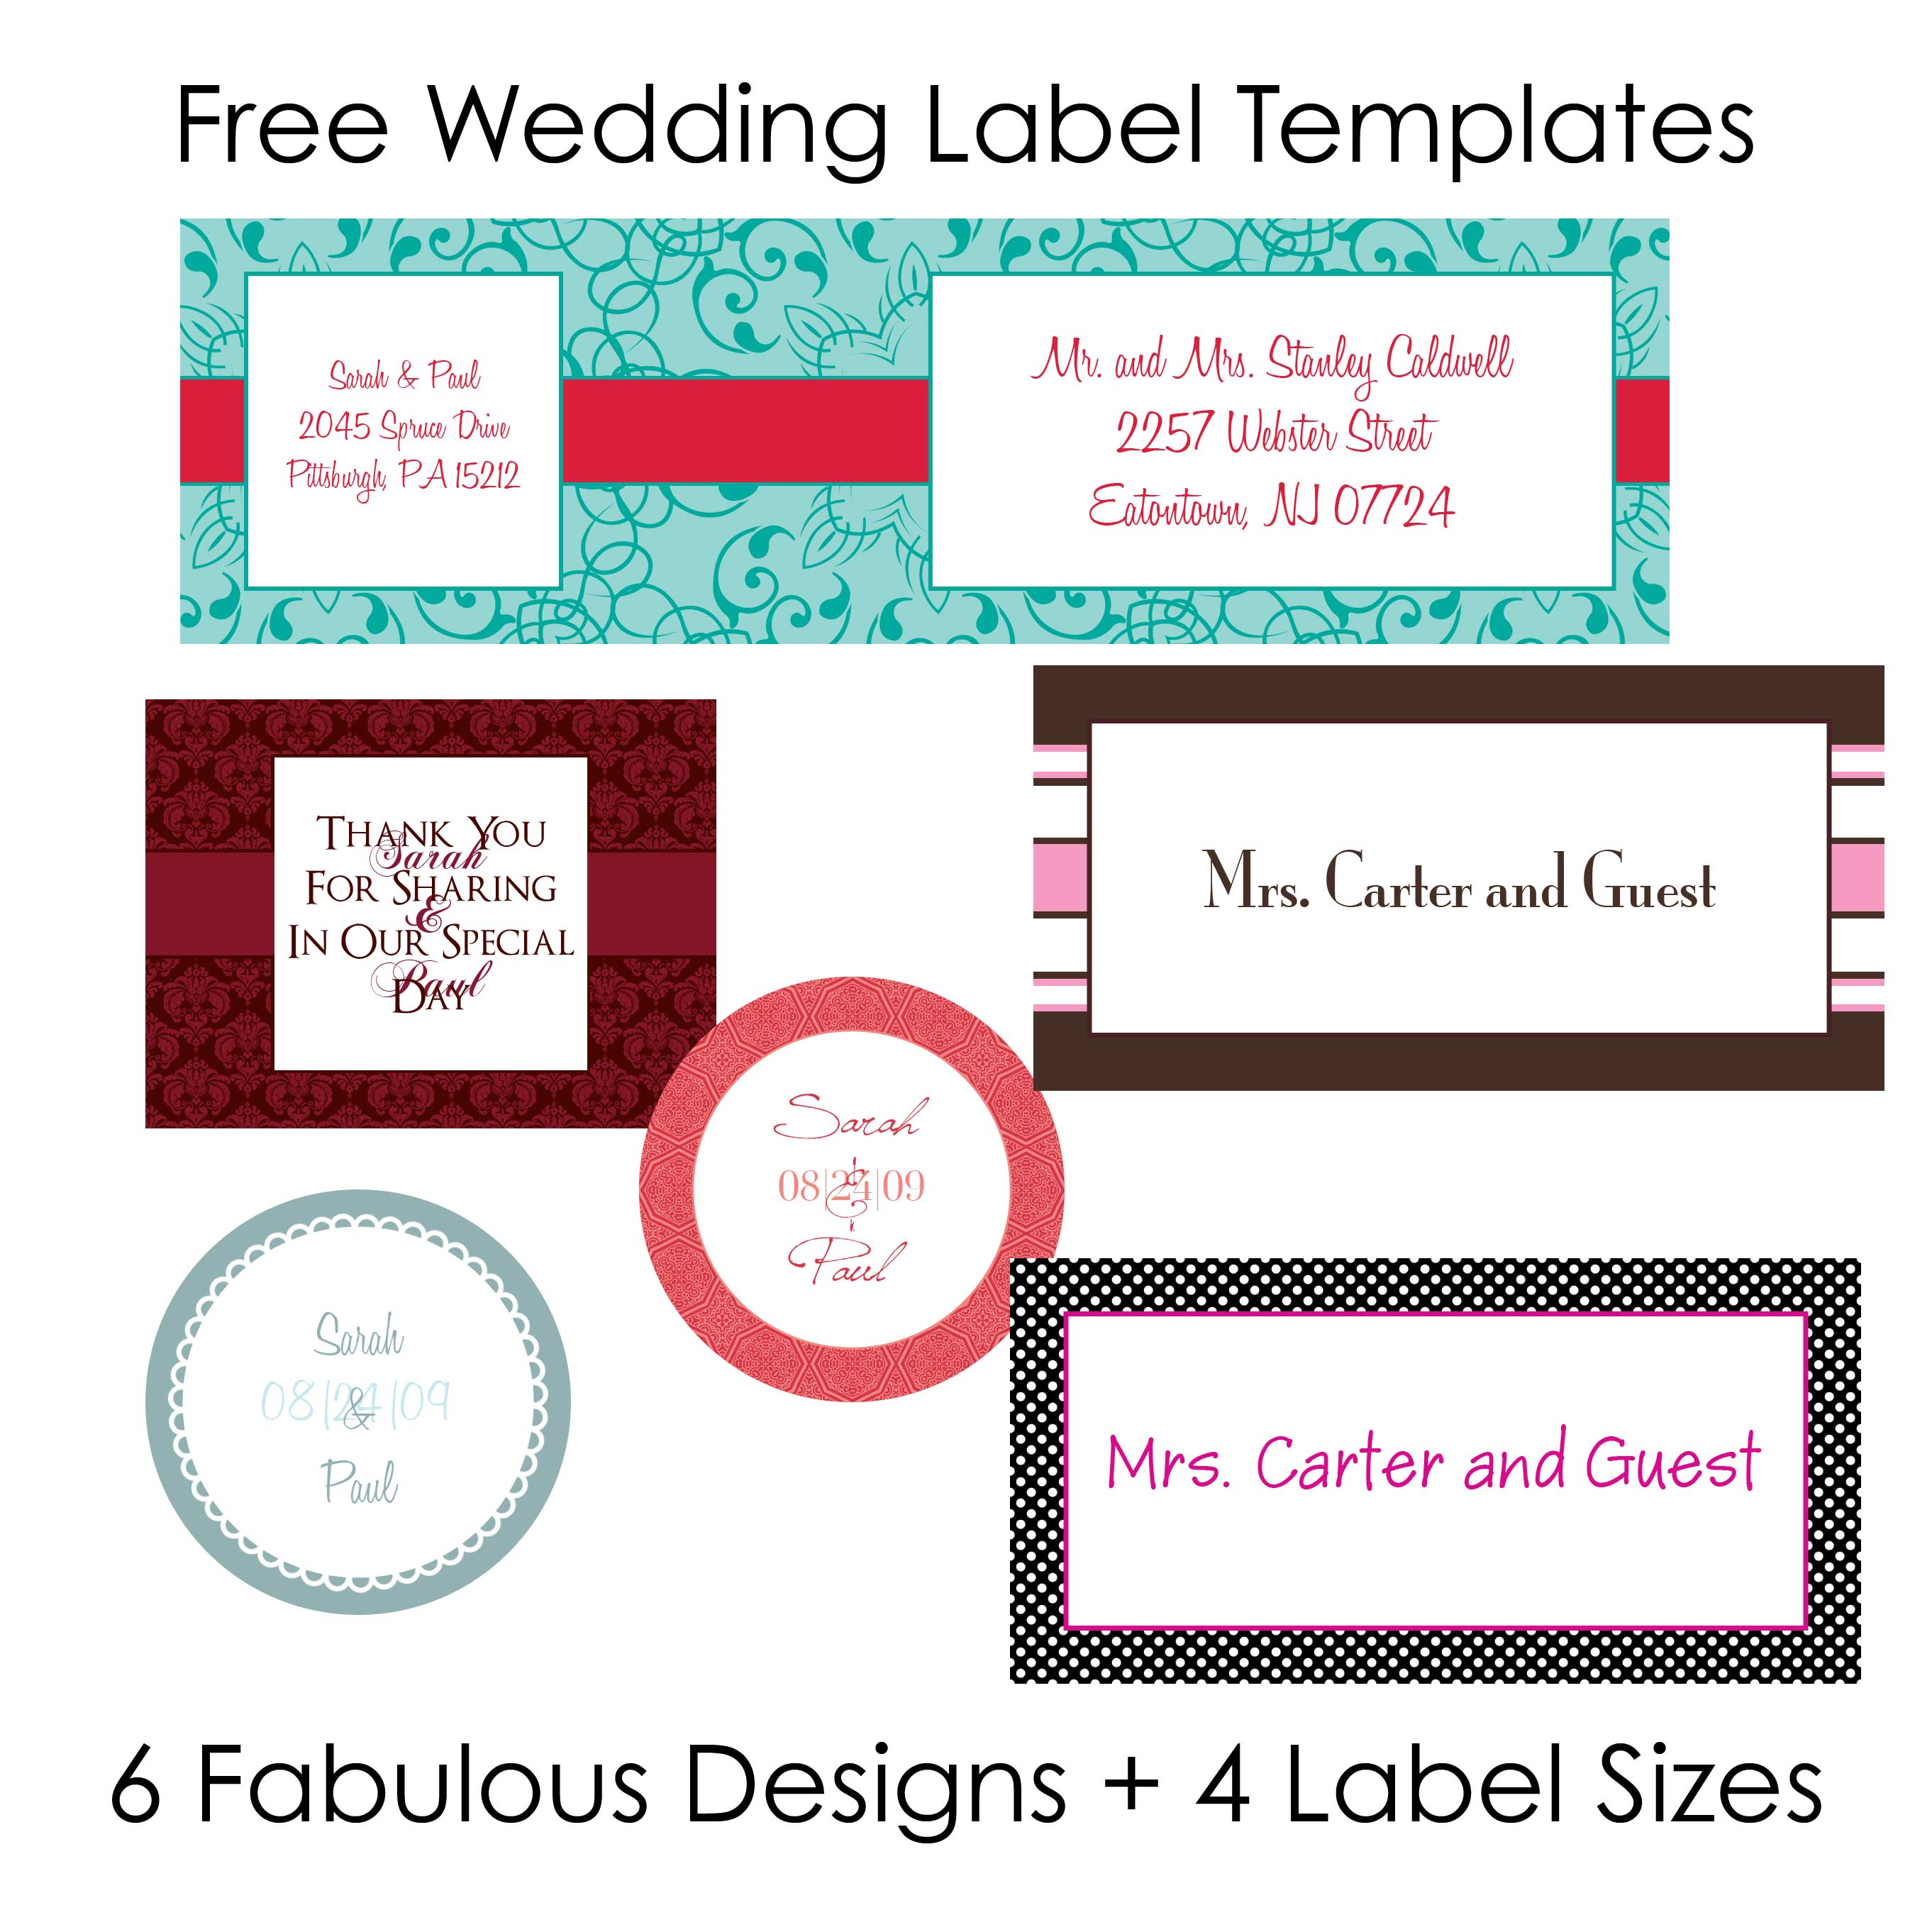 DIY Wedding Labels for free collection two – Free Mailing Label Template